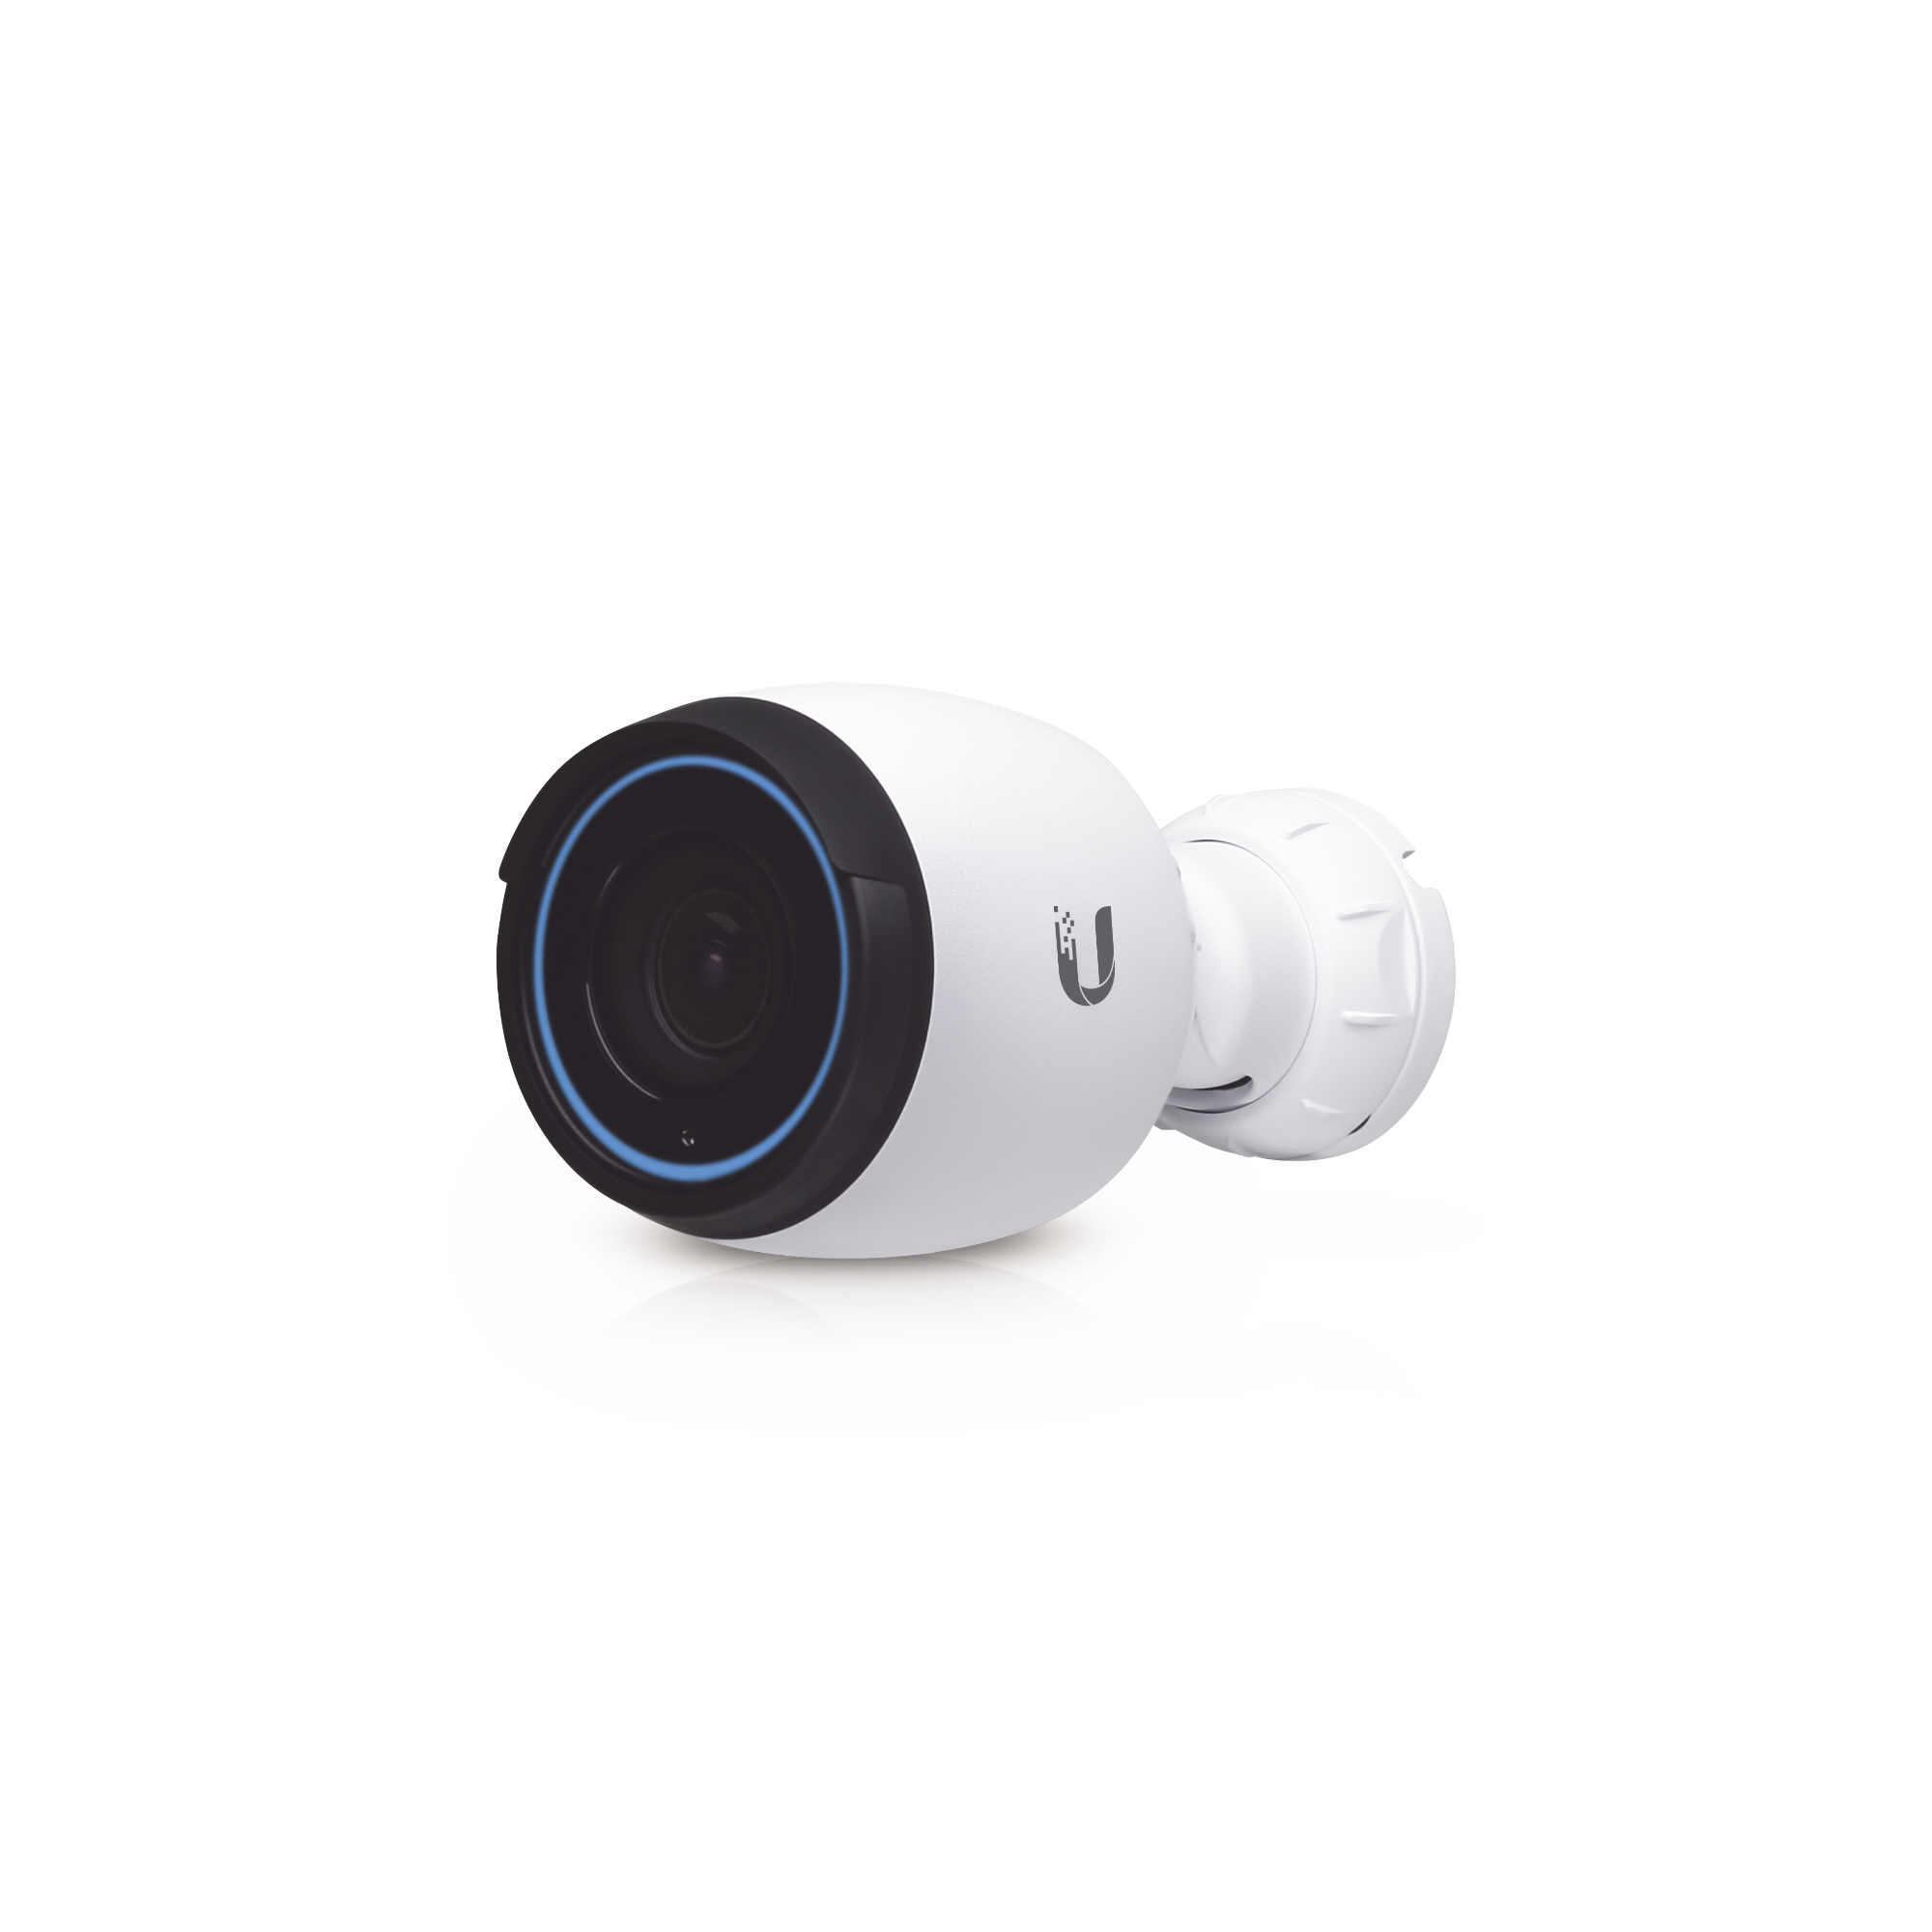 Cámara IP UniFi G4 PRO resolución Ultra HD 4K para interior y exterior IP67 con micrófono y vista nocturna, PoE 802.3af/at